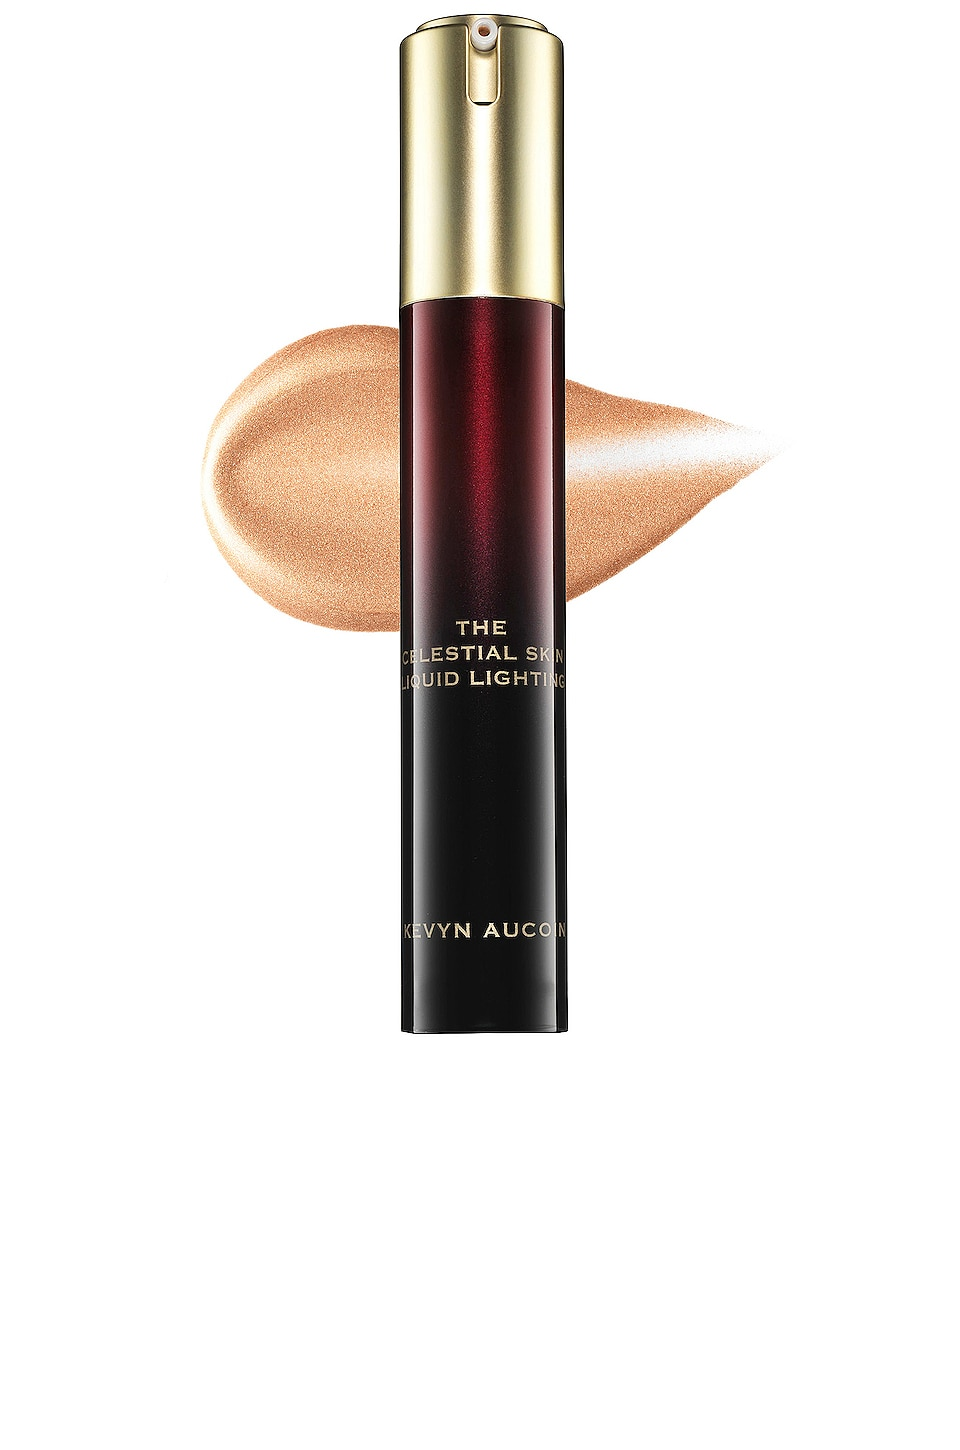 Kevyn Aucoin The Celestial Skin Liquid Lighting in Starlight